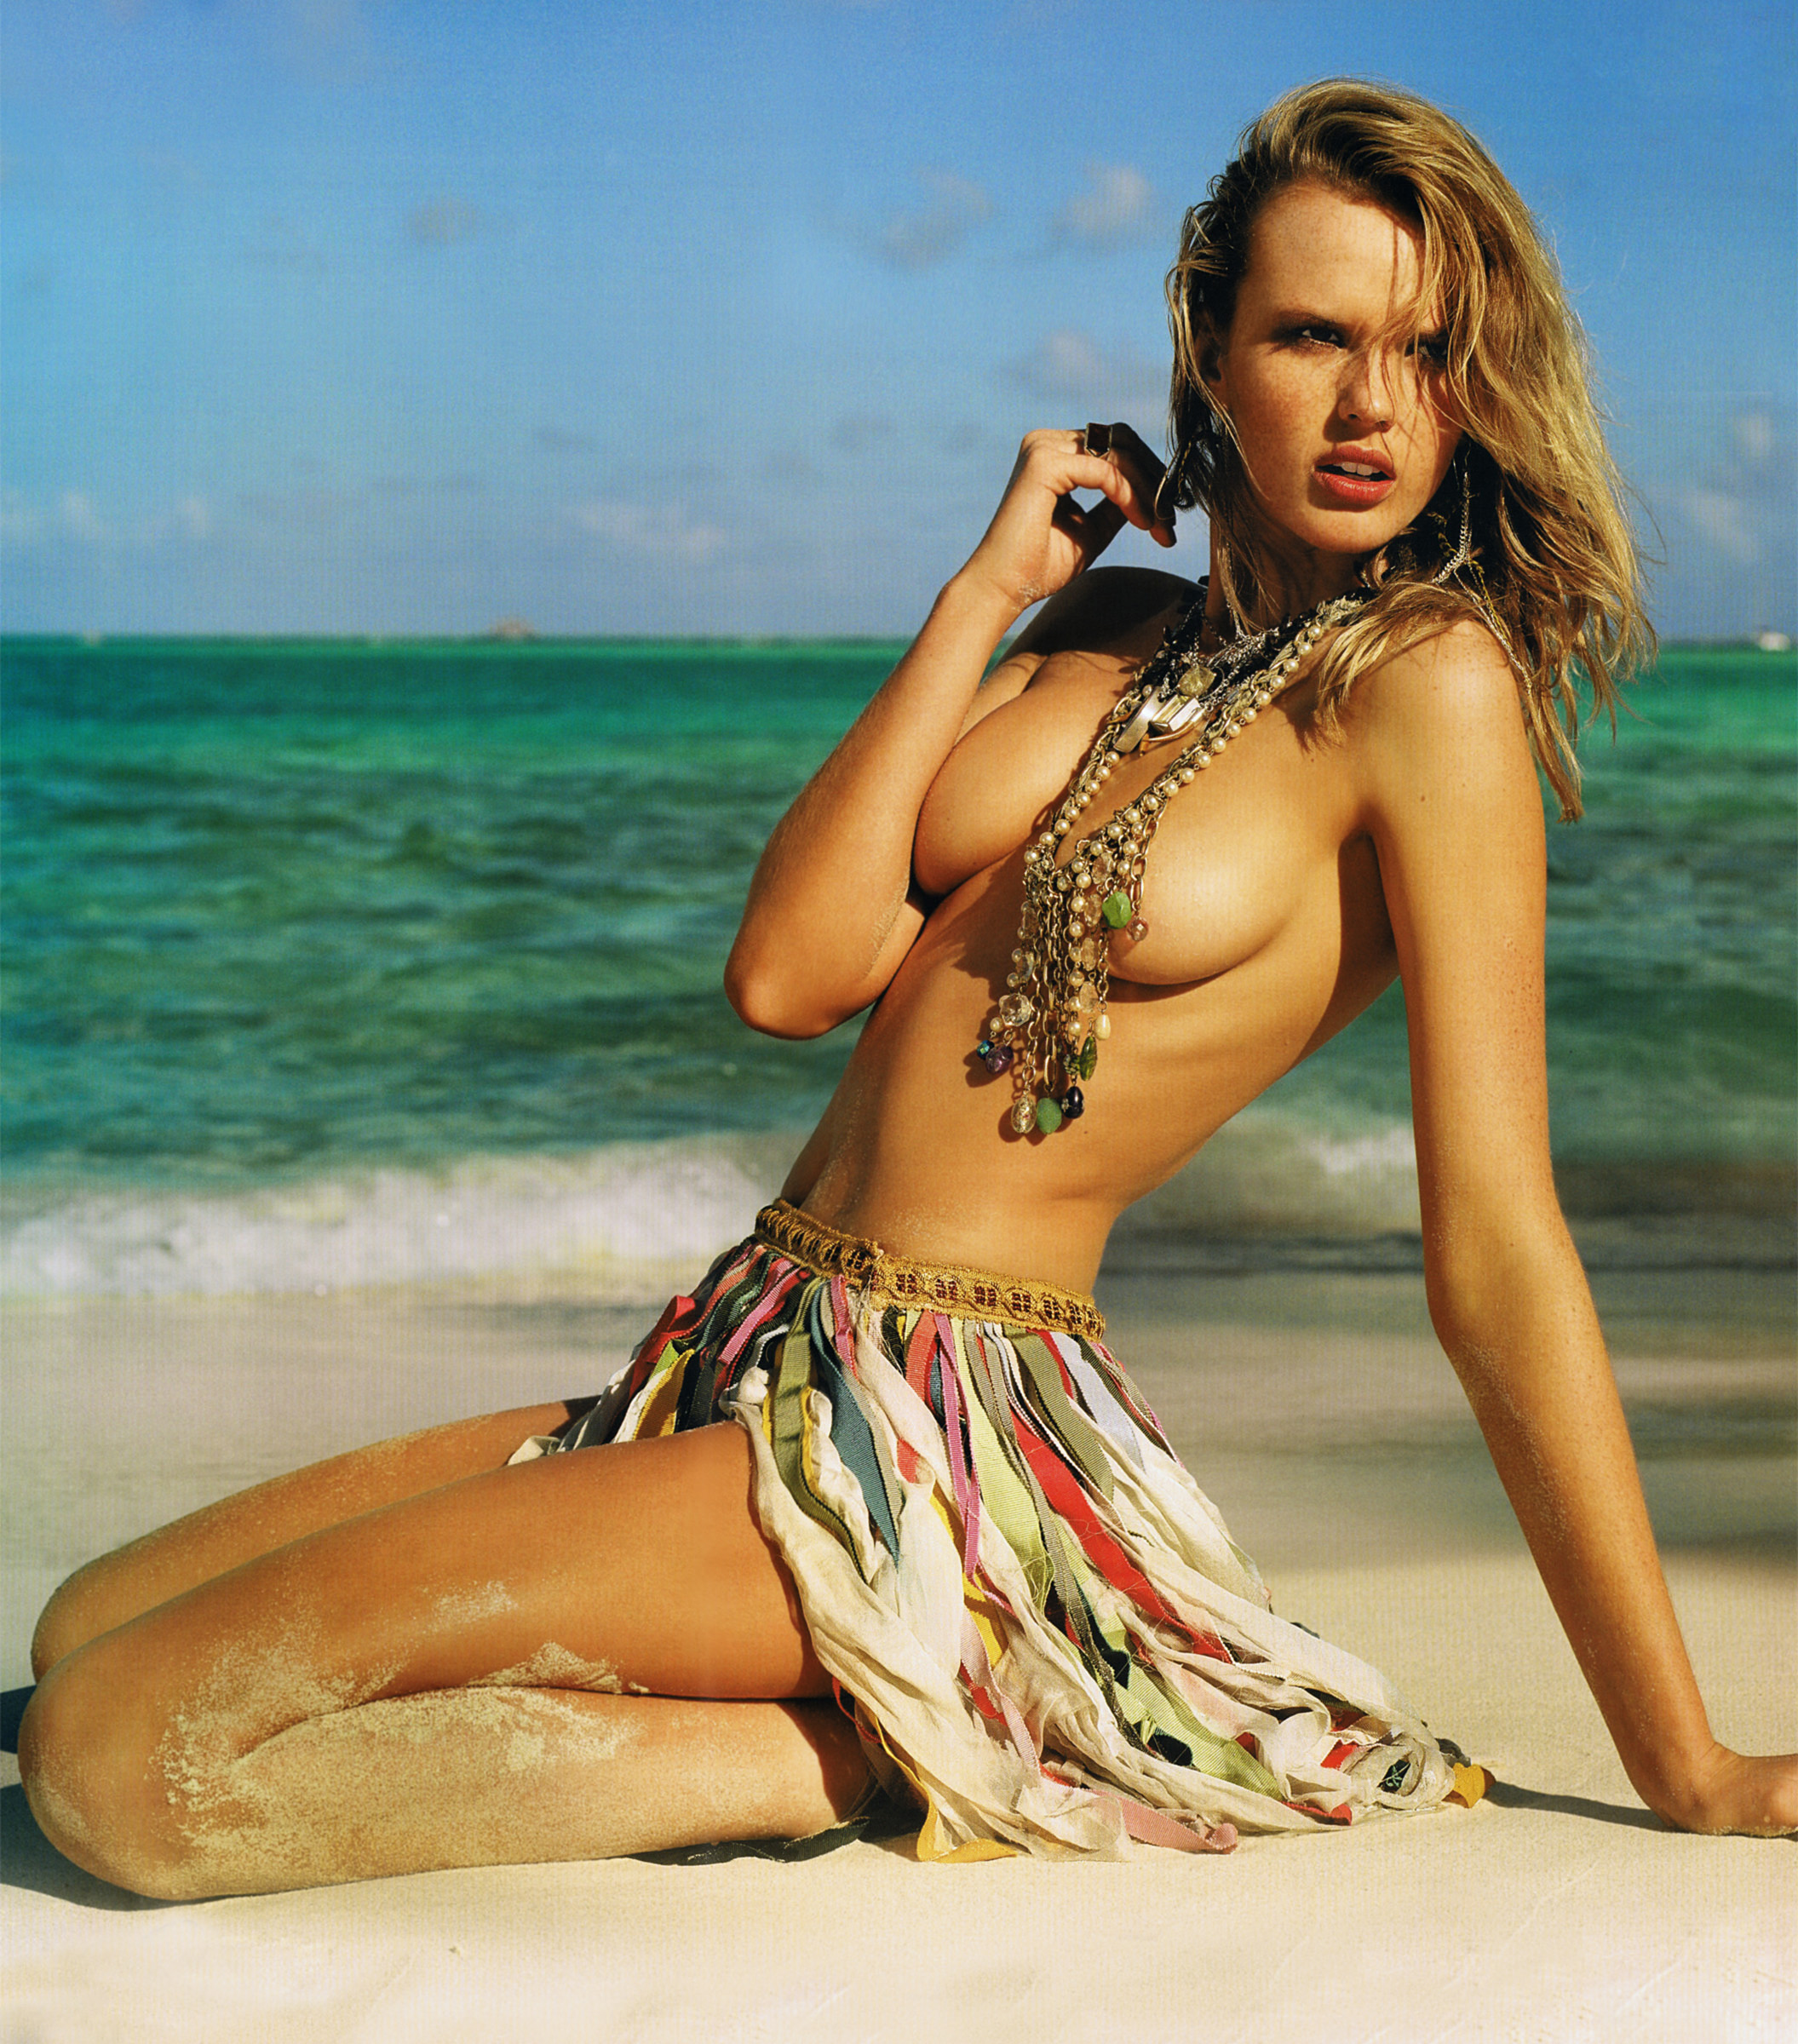 Anne Vyalitsyna hot lady pic